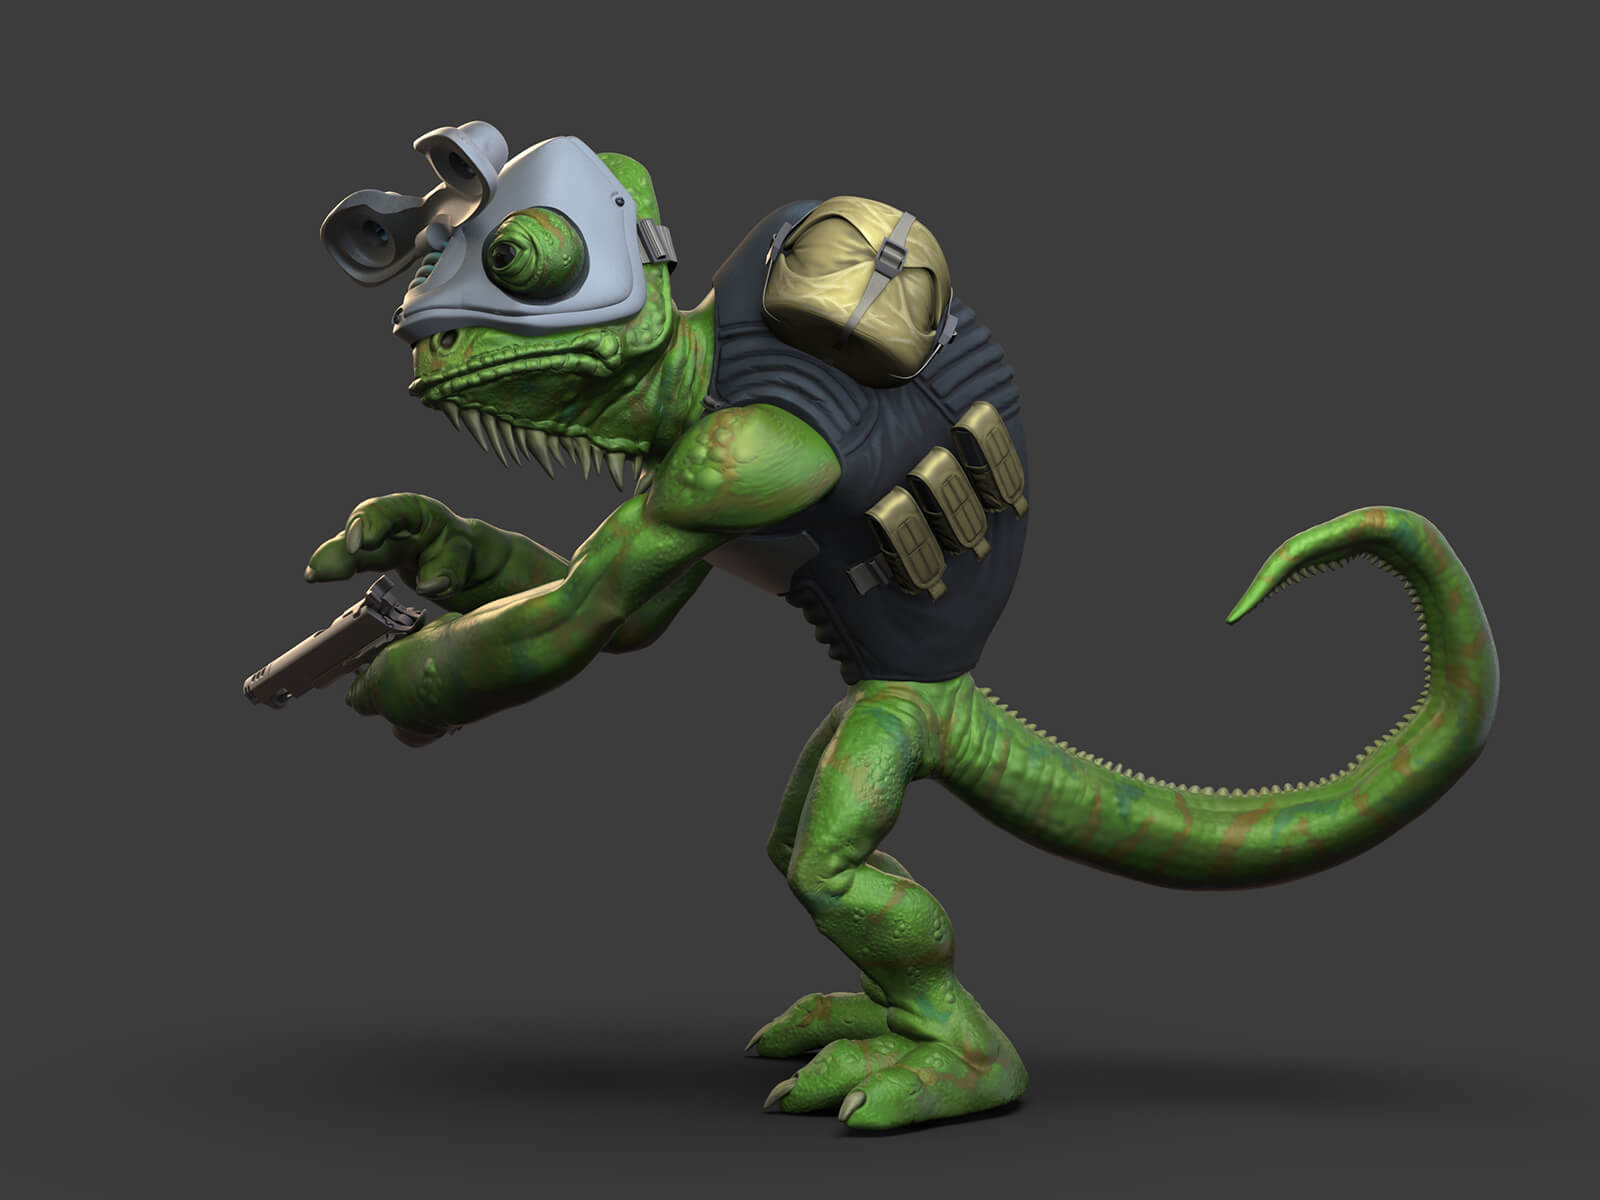 Side view of a lizard wearing goggles and carrying a gun